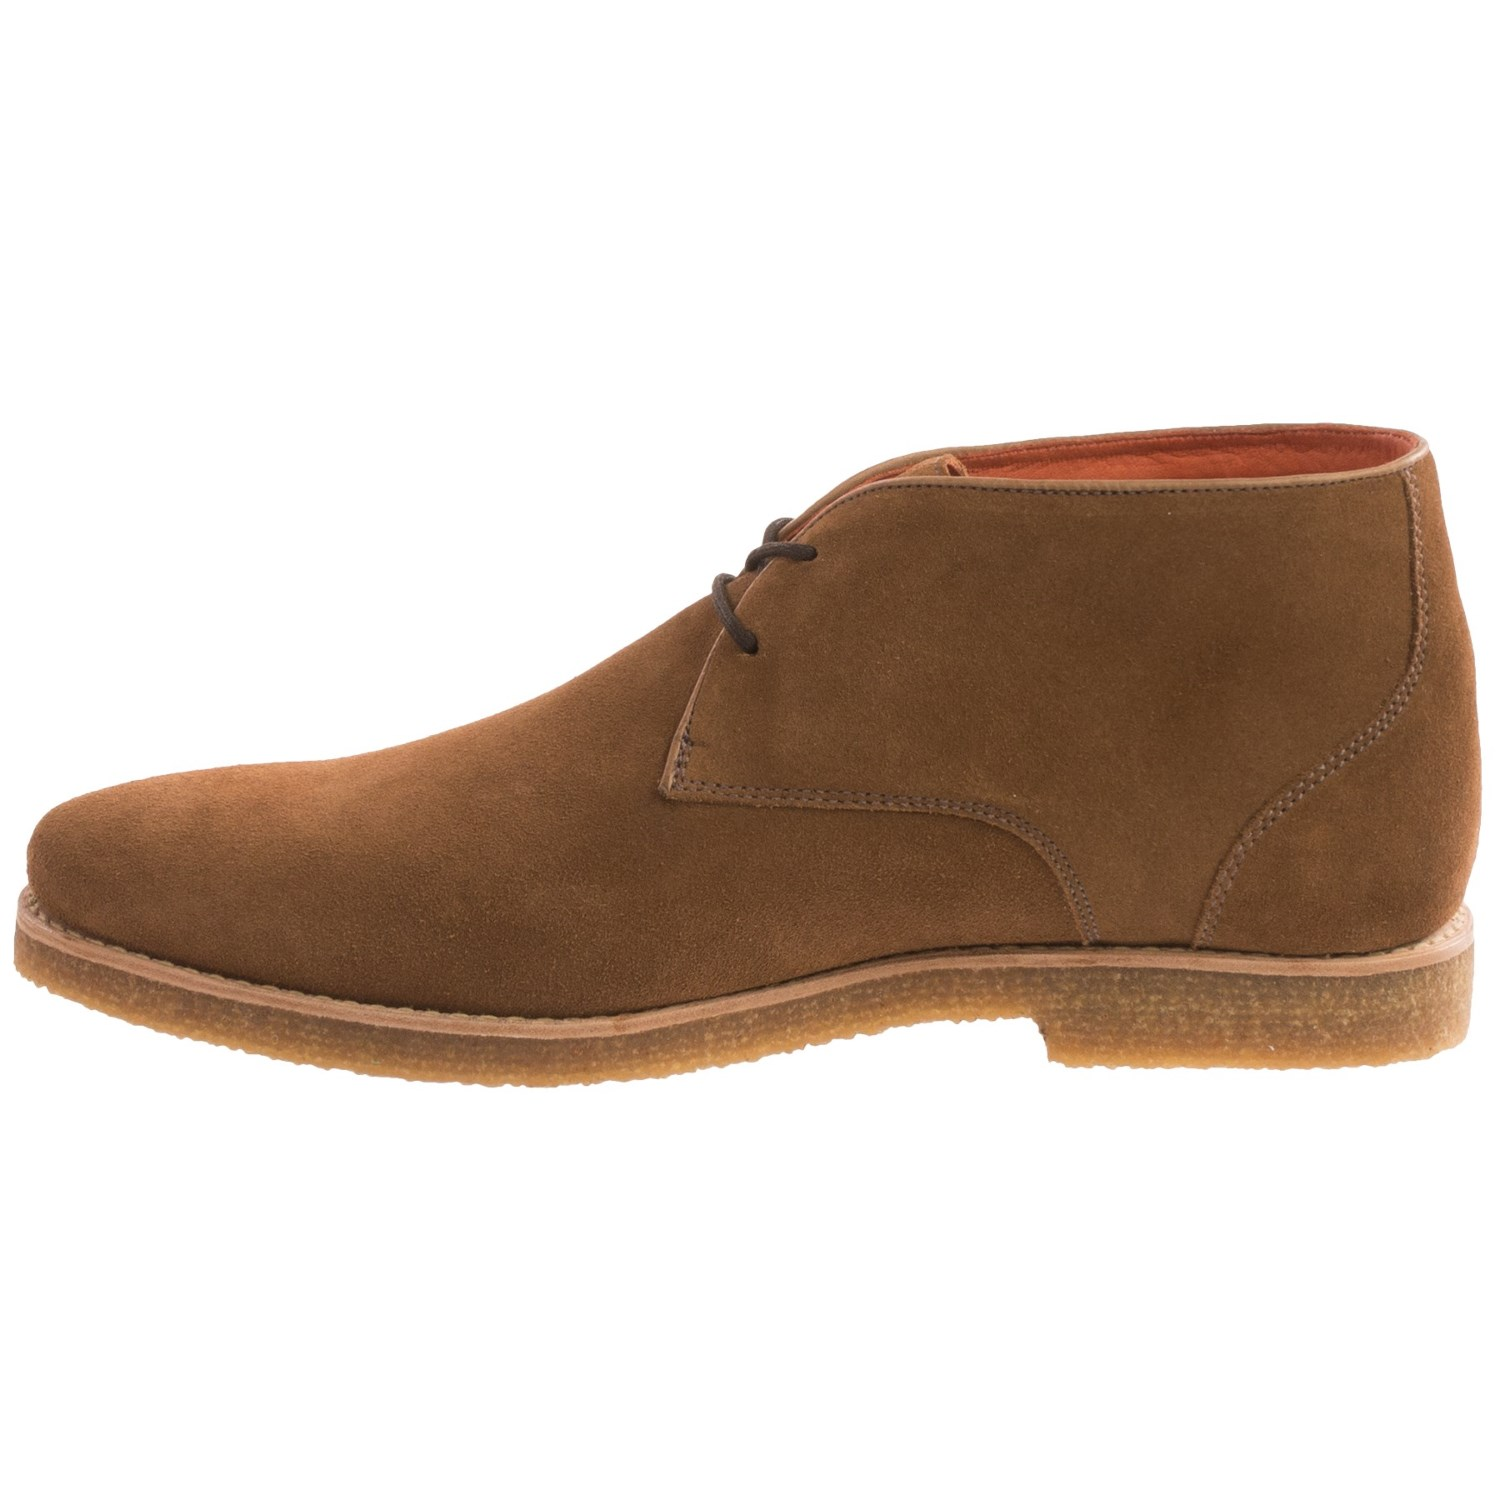 Shop eBay for great deals on Suede Men's Dress Shoes. You'll find new or used products in Suede Men's Dress Shoes on eBay. Free shipping on selected items.